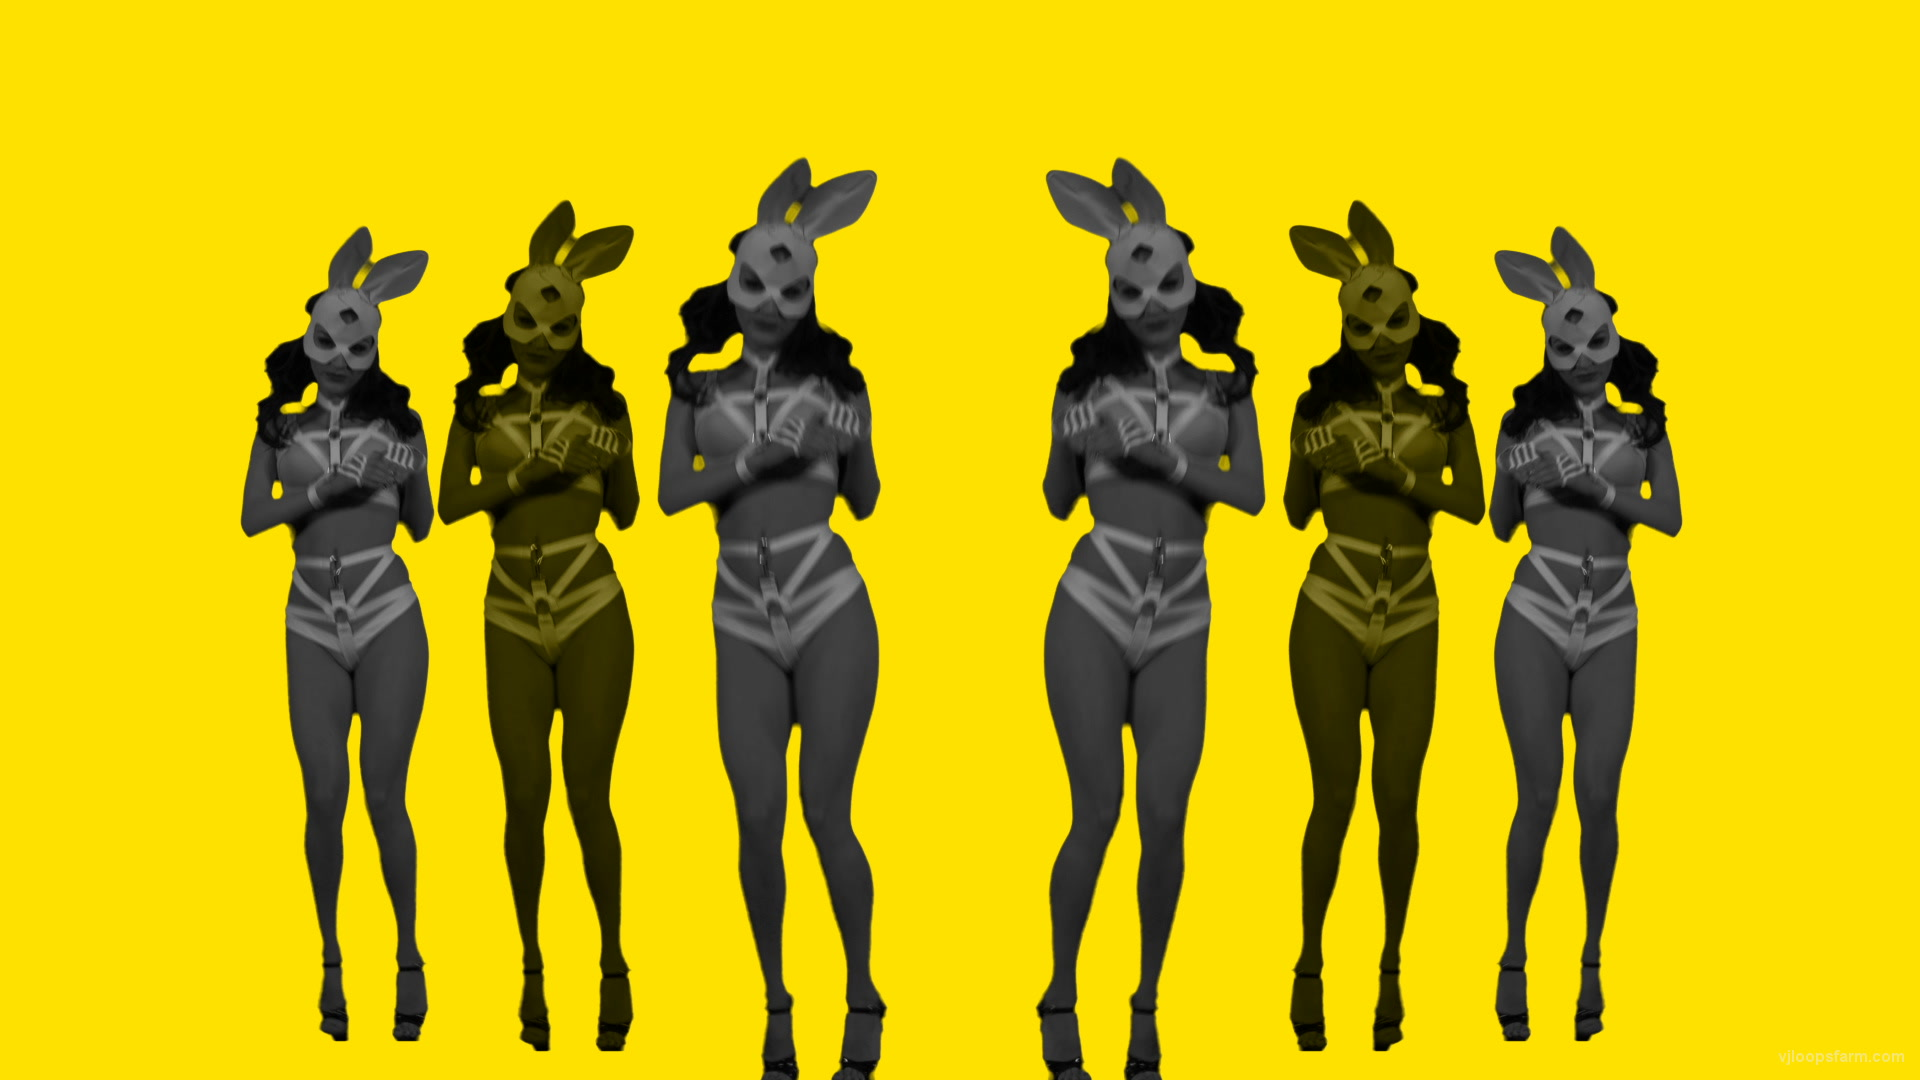 vj video background Rabbit-Power-Yellow-Avatar-Frau-1920x1080_29fps_VJLoop-Nektar-Digital_003